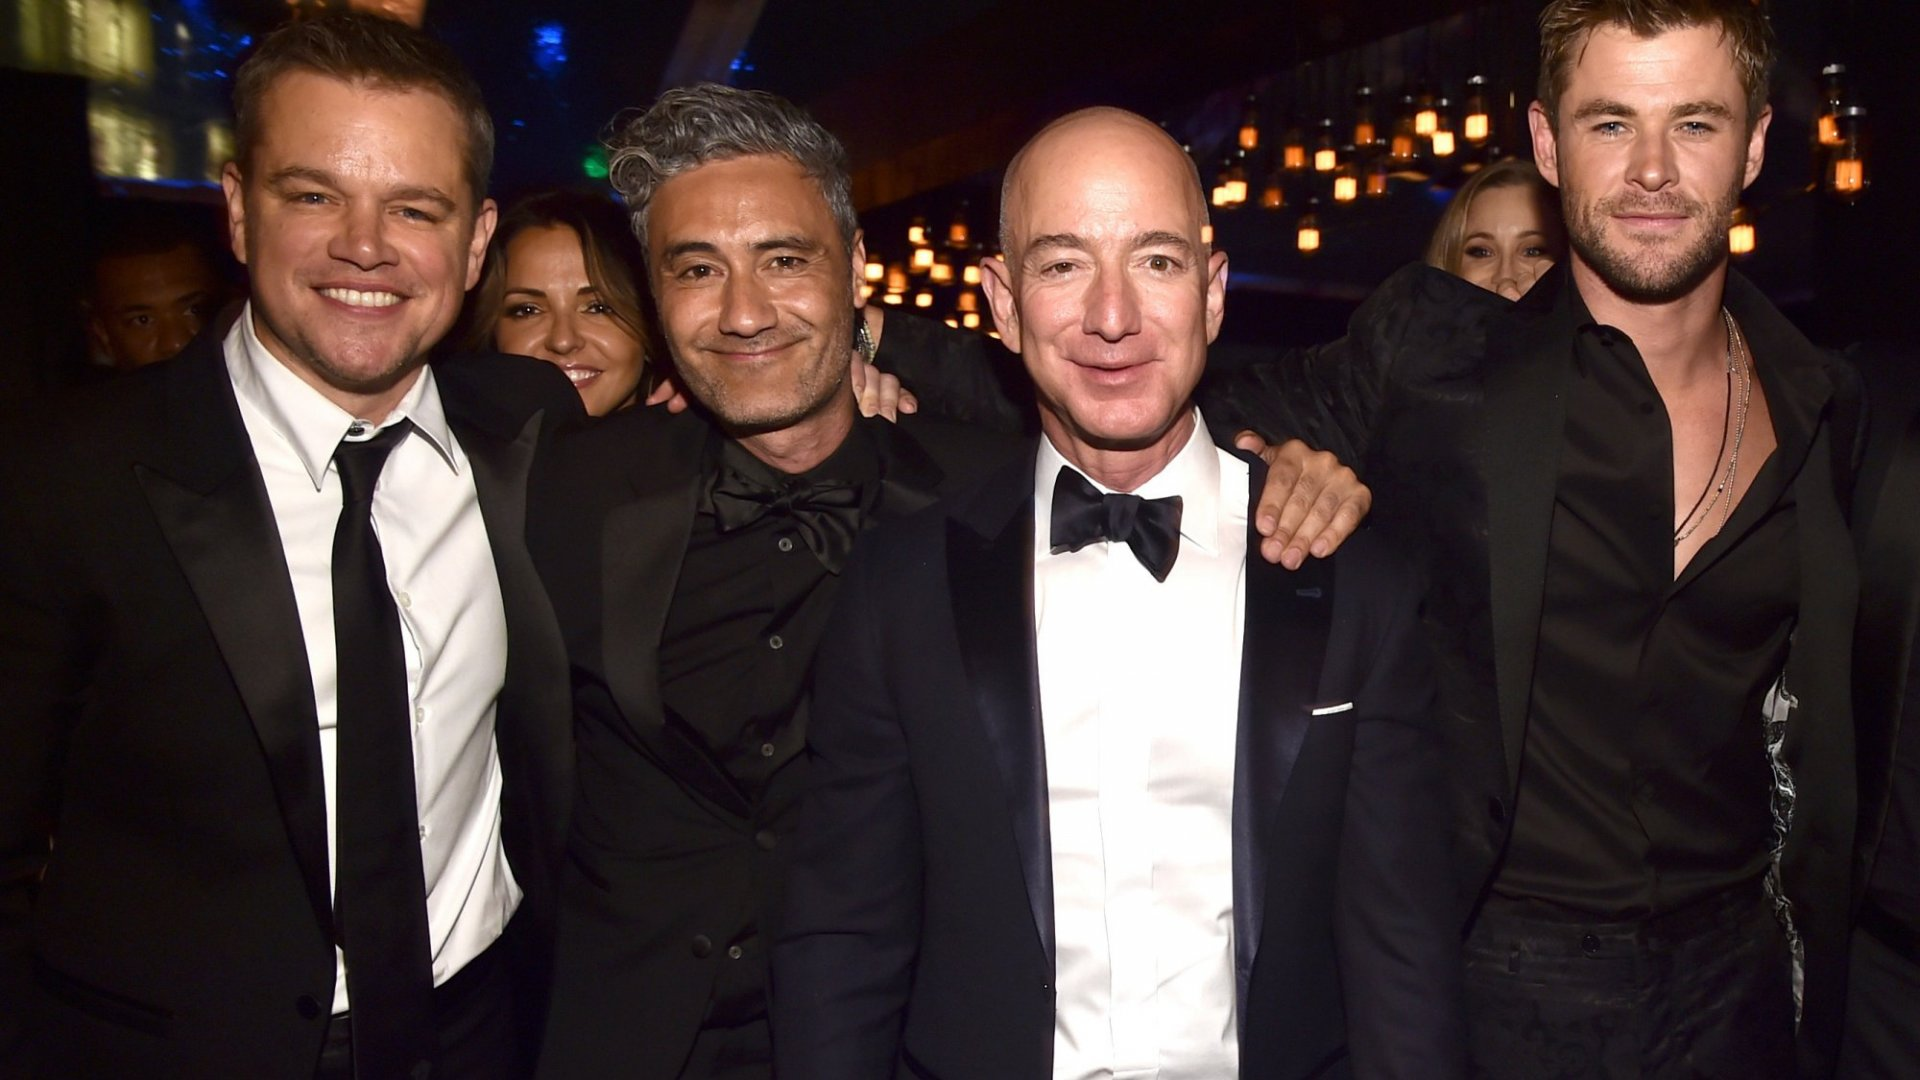 Why Jeff Bezos Puts Relentless Focus on Amazon's Company Culture